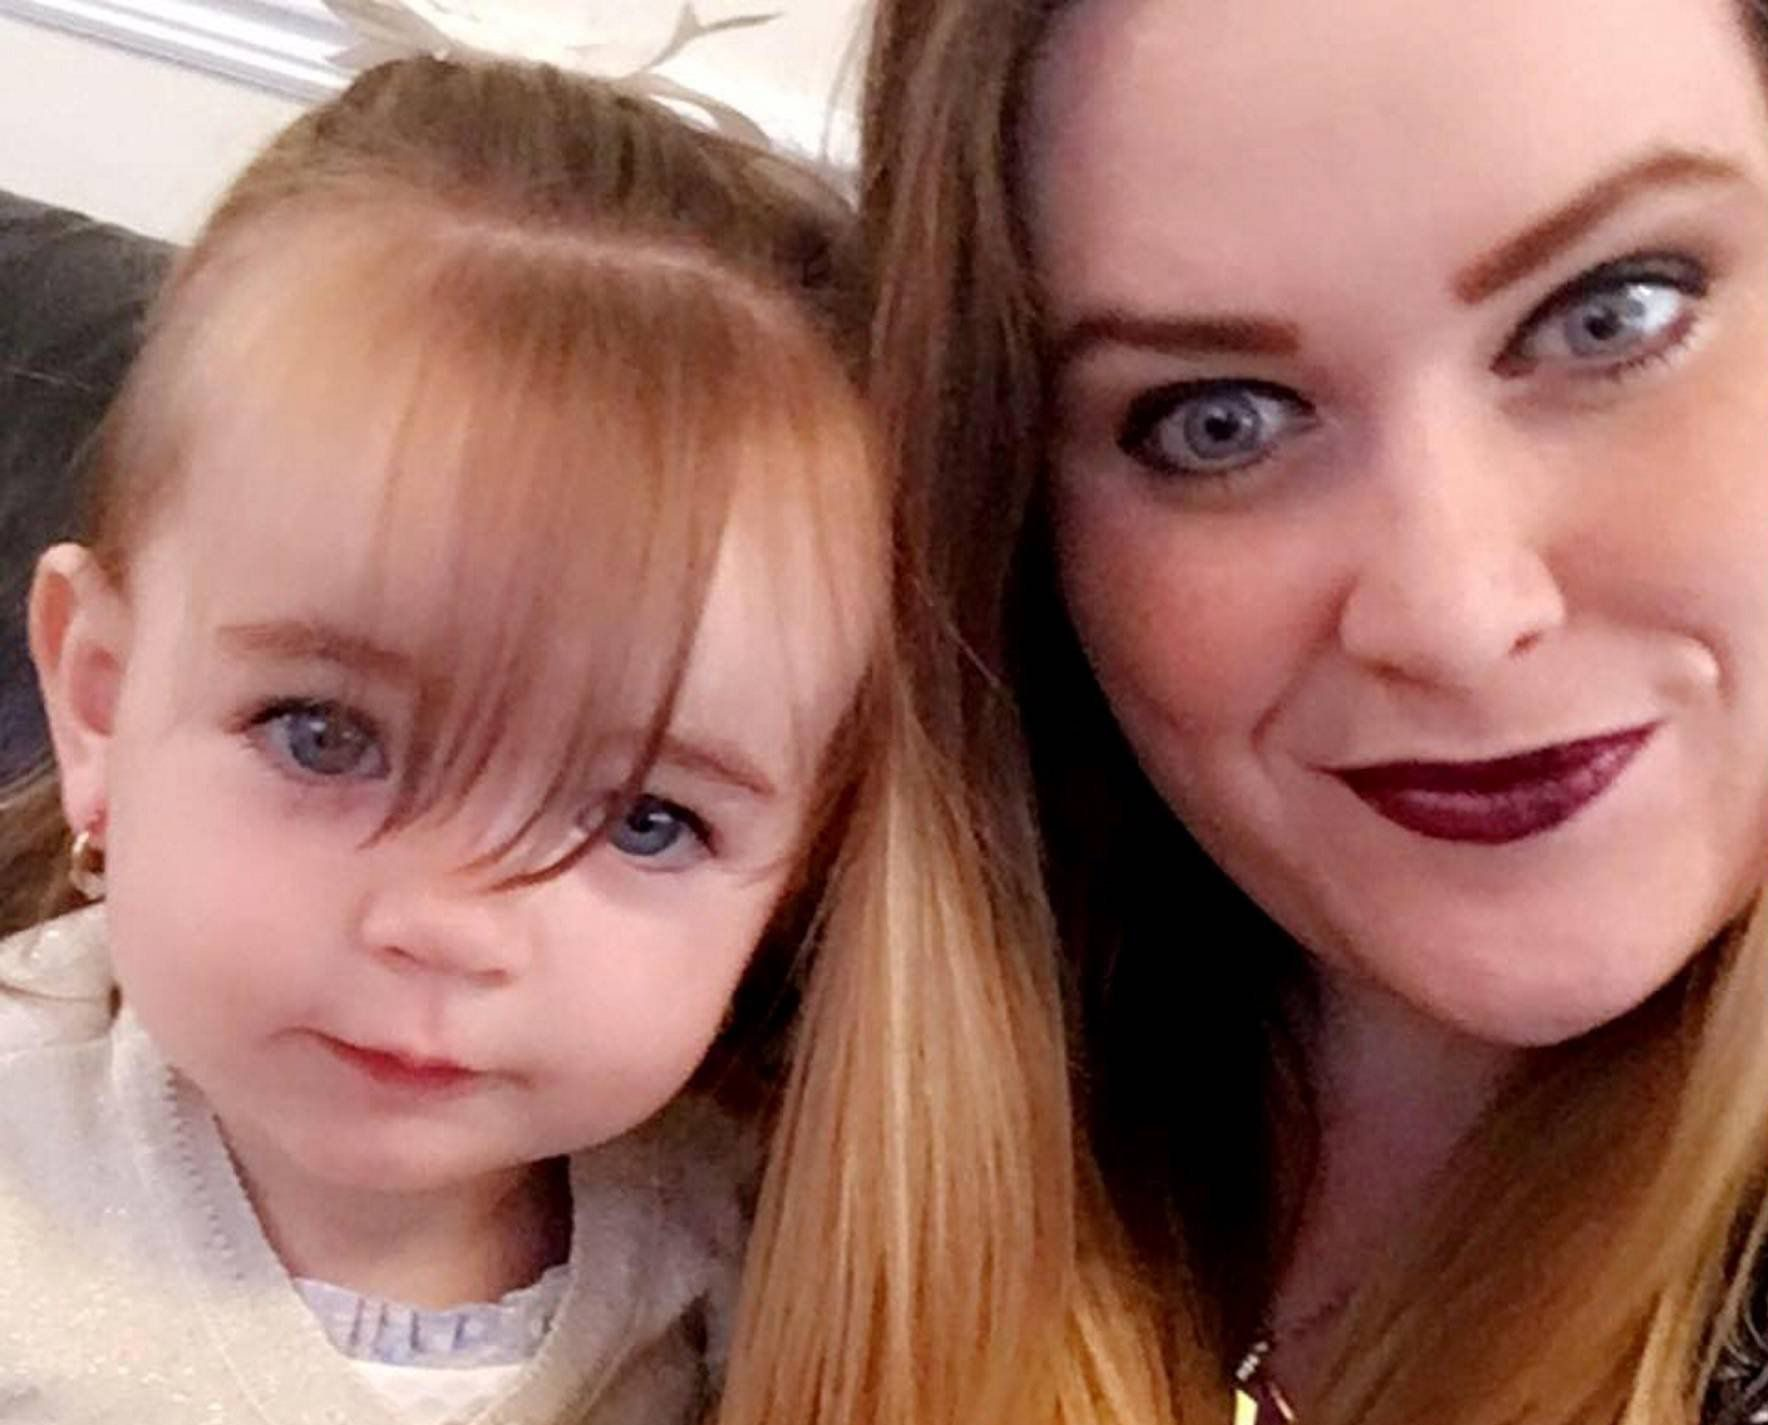 "Dated:21/02/2016 RACE HATE MAN SPAT IN BABY FACE COURT CASE Pictured is mother Rebecca Telford, 25 whose baby daughter Layla-Jean also pictured was attacked by Rezzas Abdulla who spat into the nine-month-old baby's face and shouted ""white people shouldn't breed"" in a sickening race-hate assault . see court copy by North News"